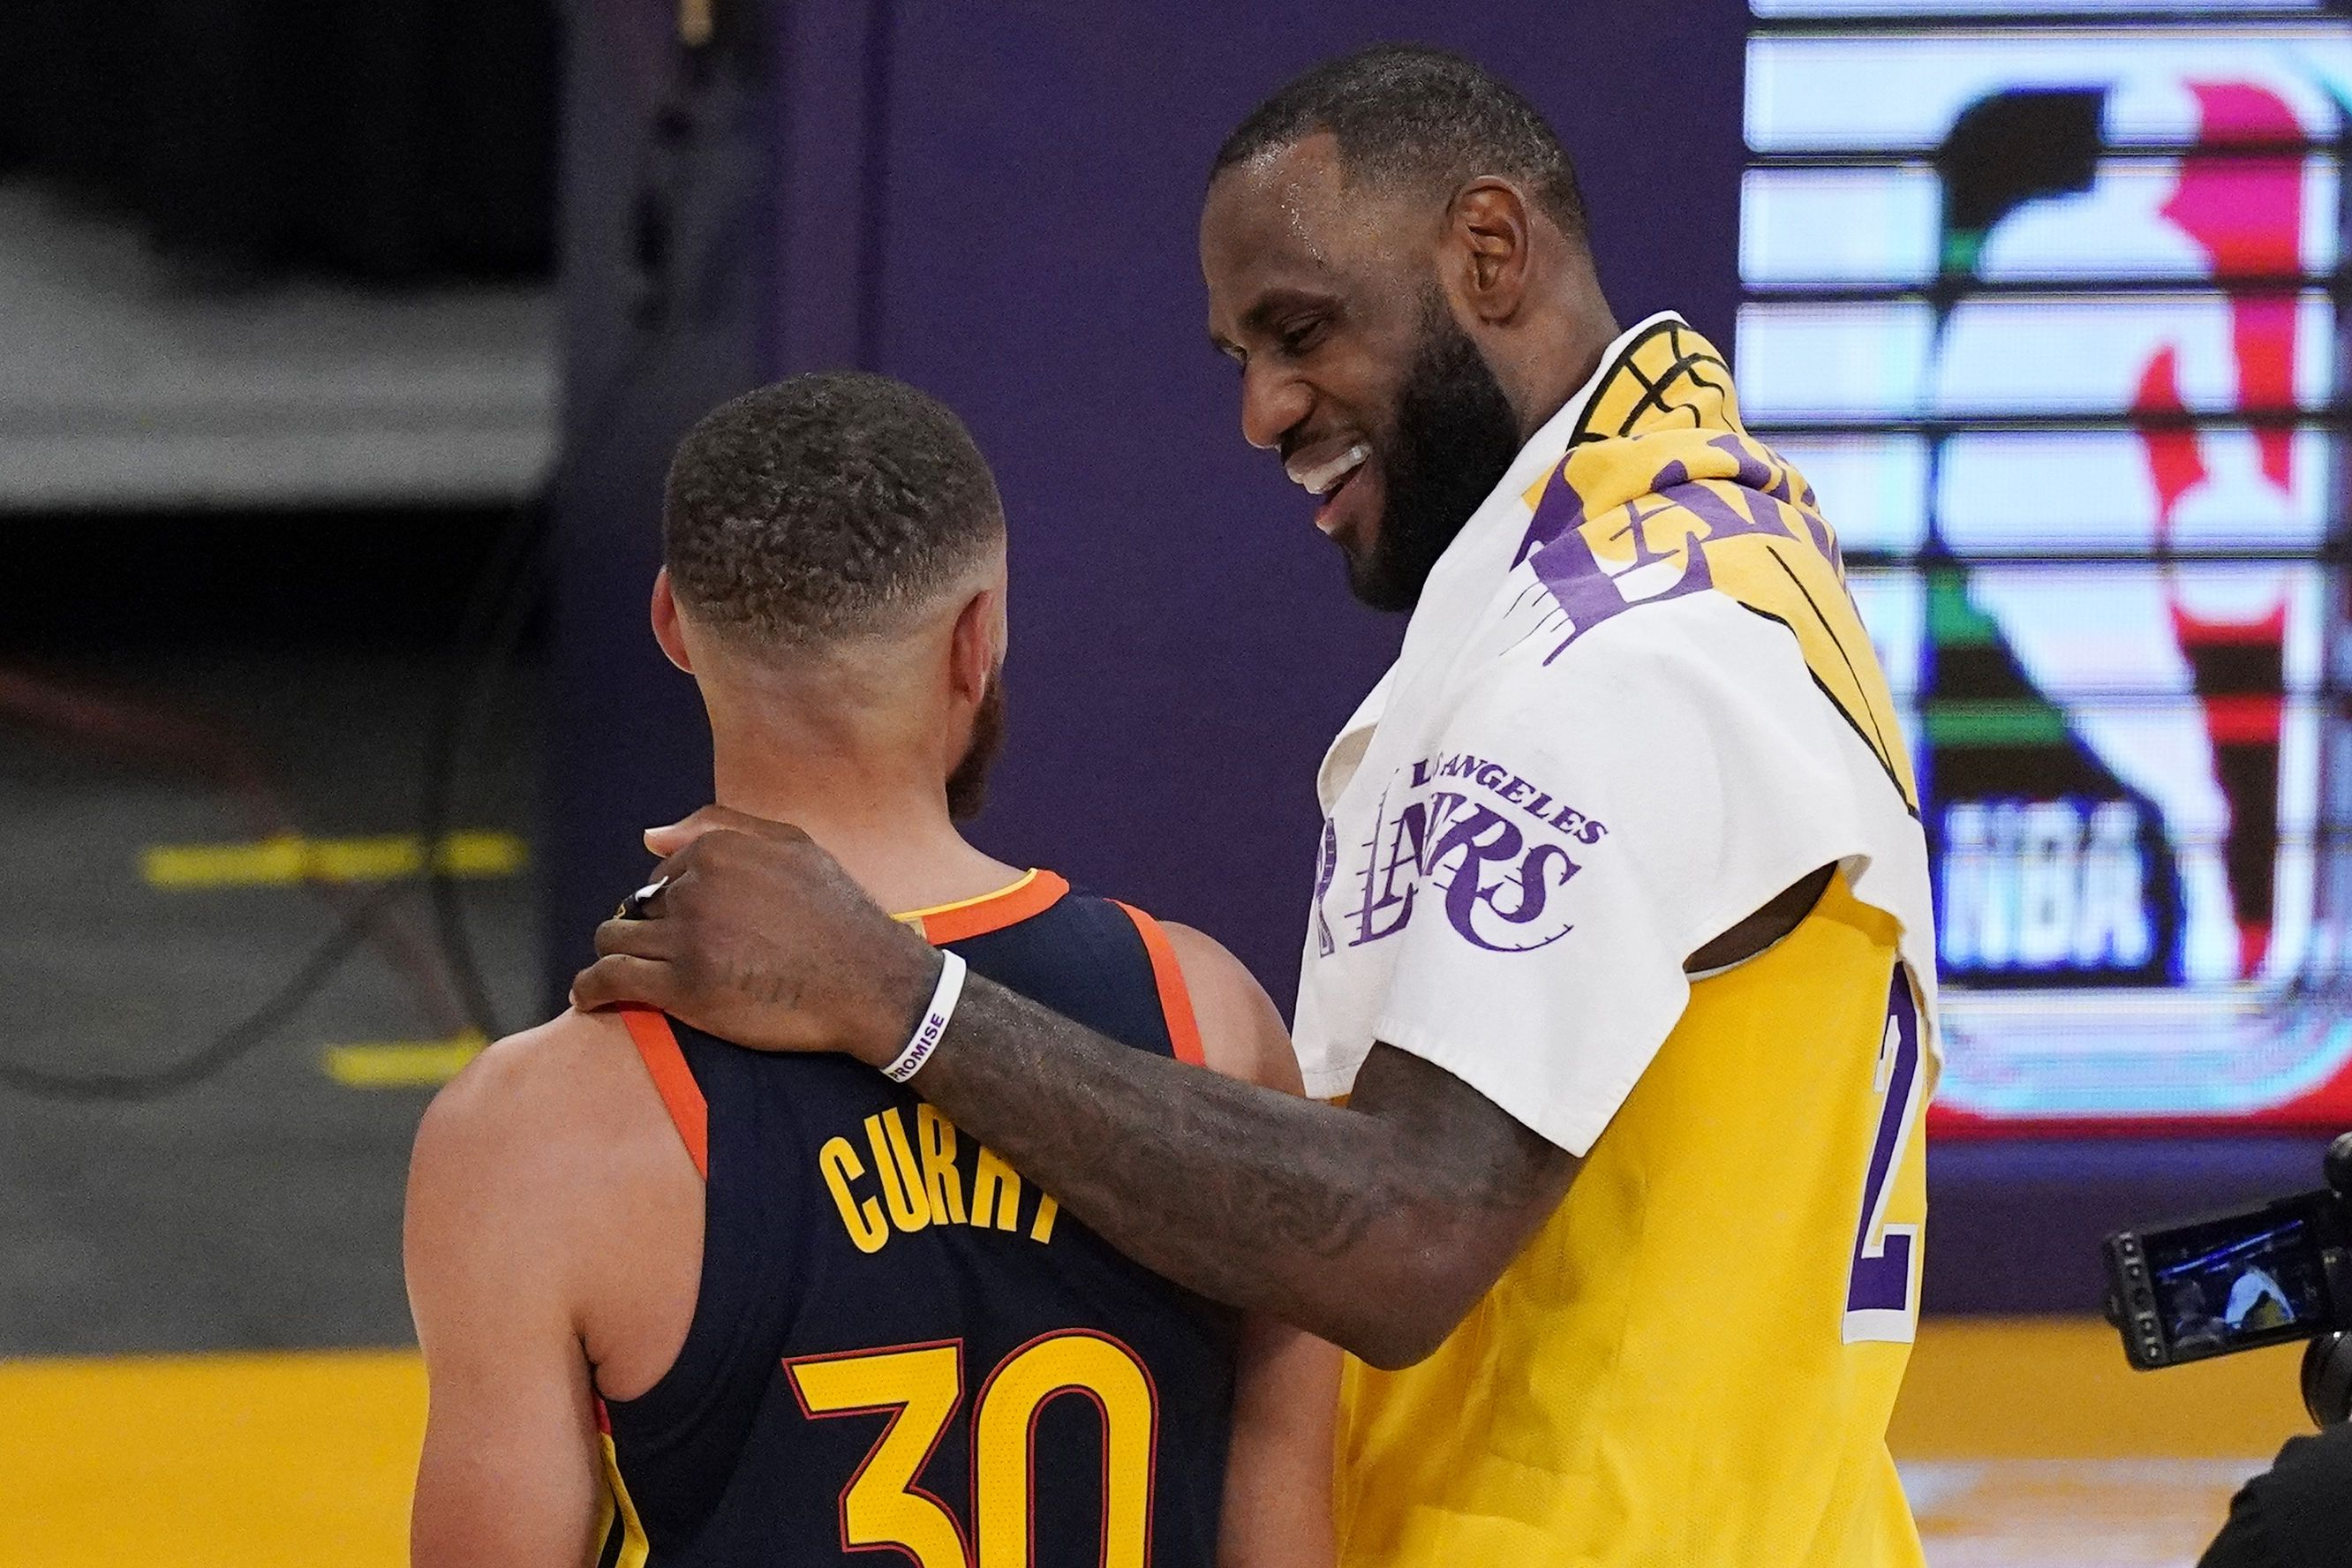 Warriors Lakers A Fortunate Play In Matchup For Nba Espn The Boston Globe